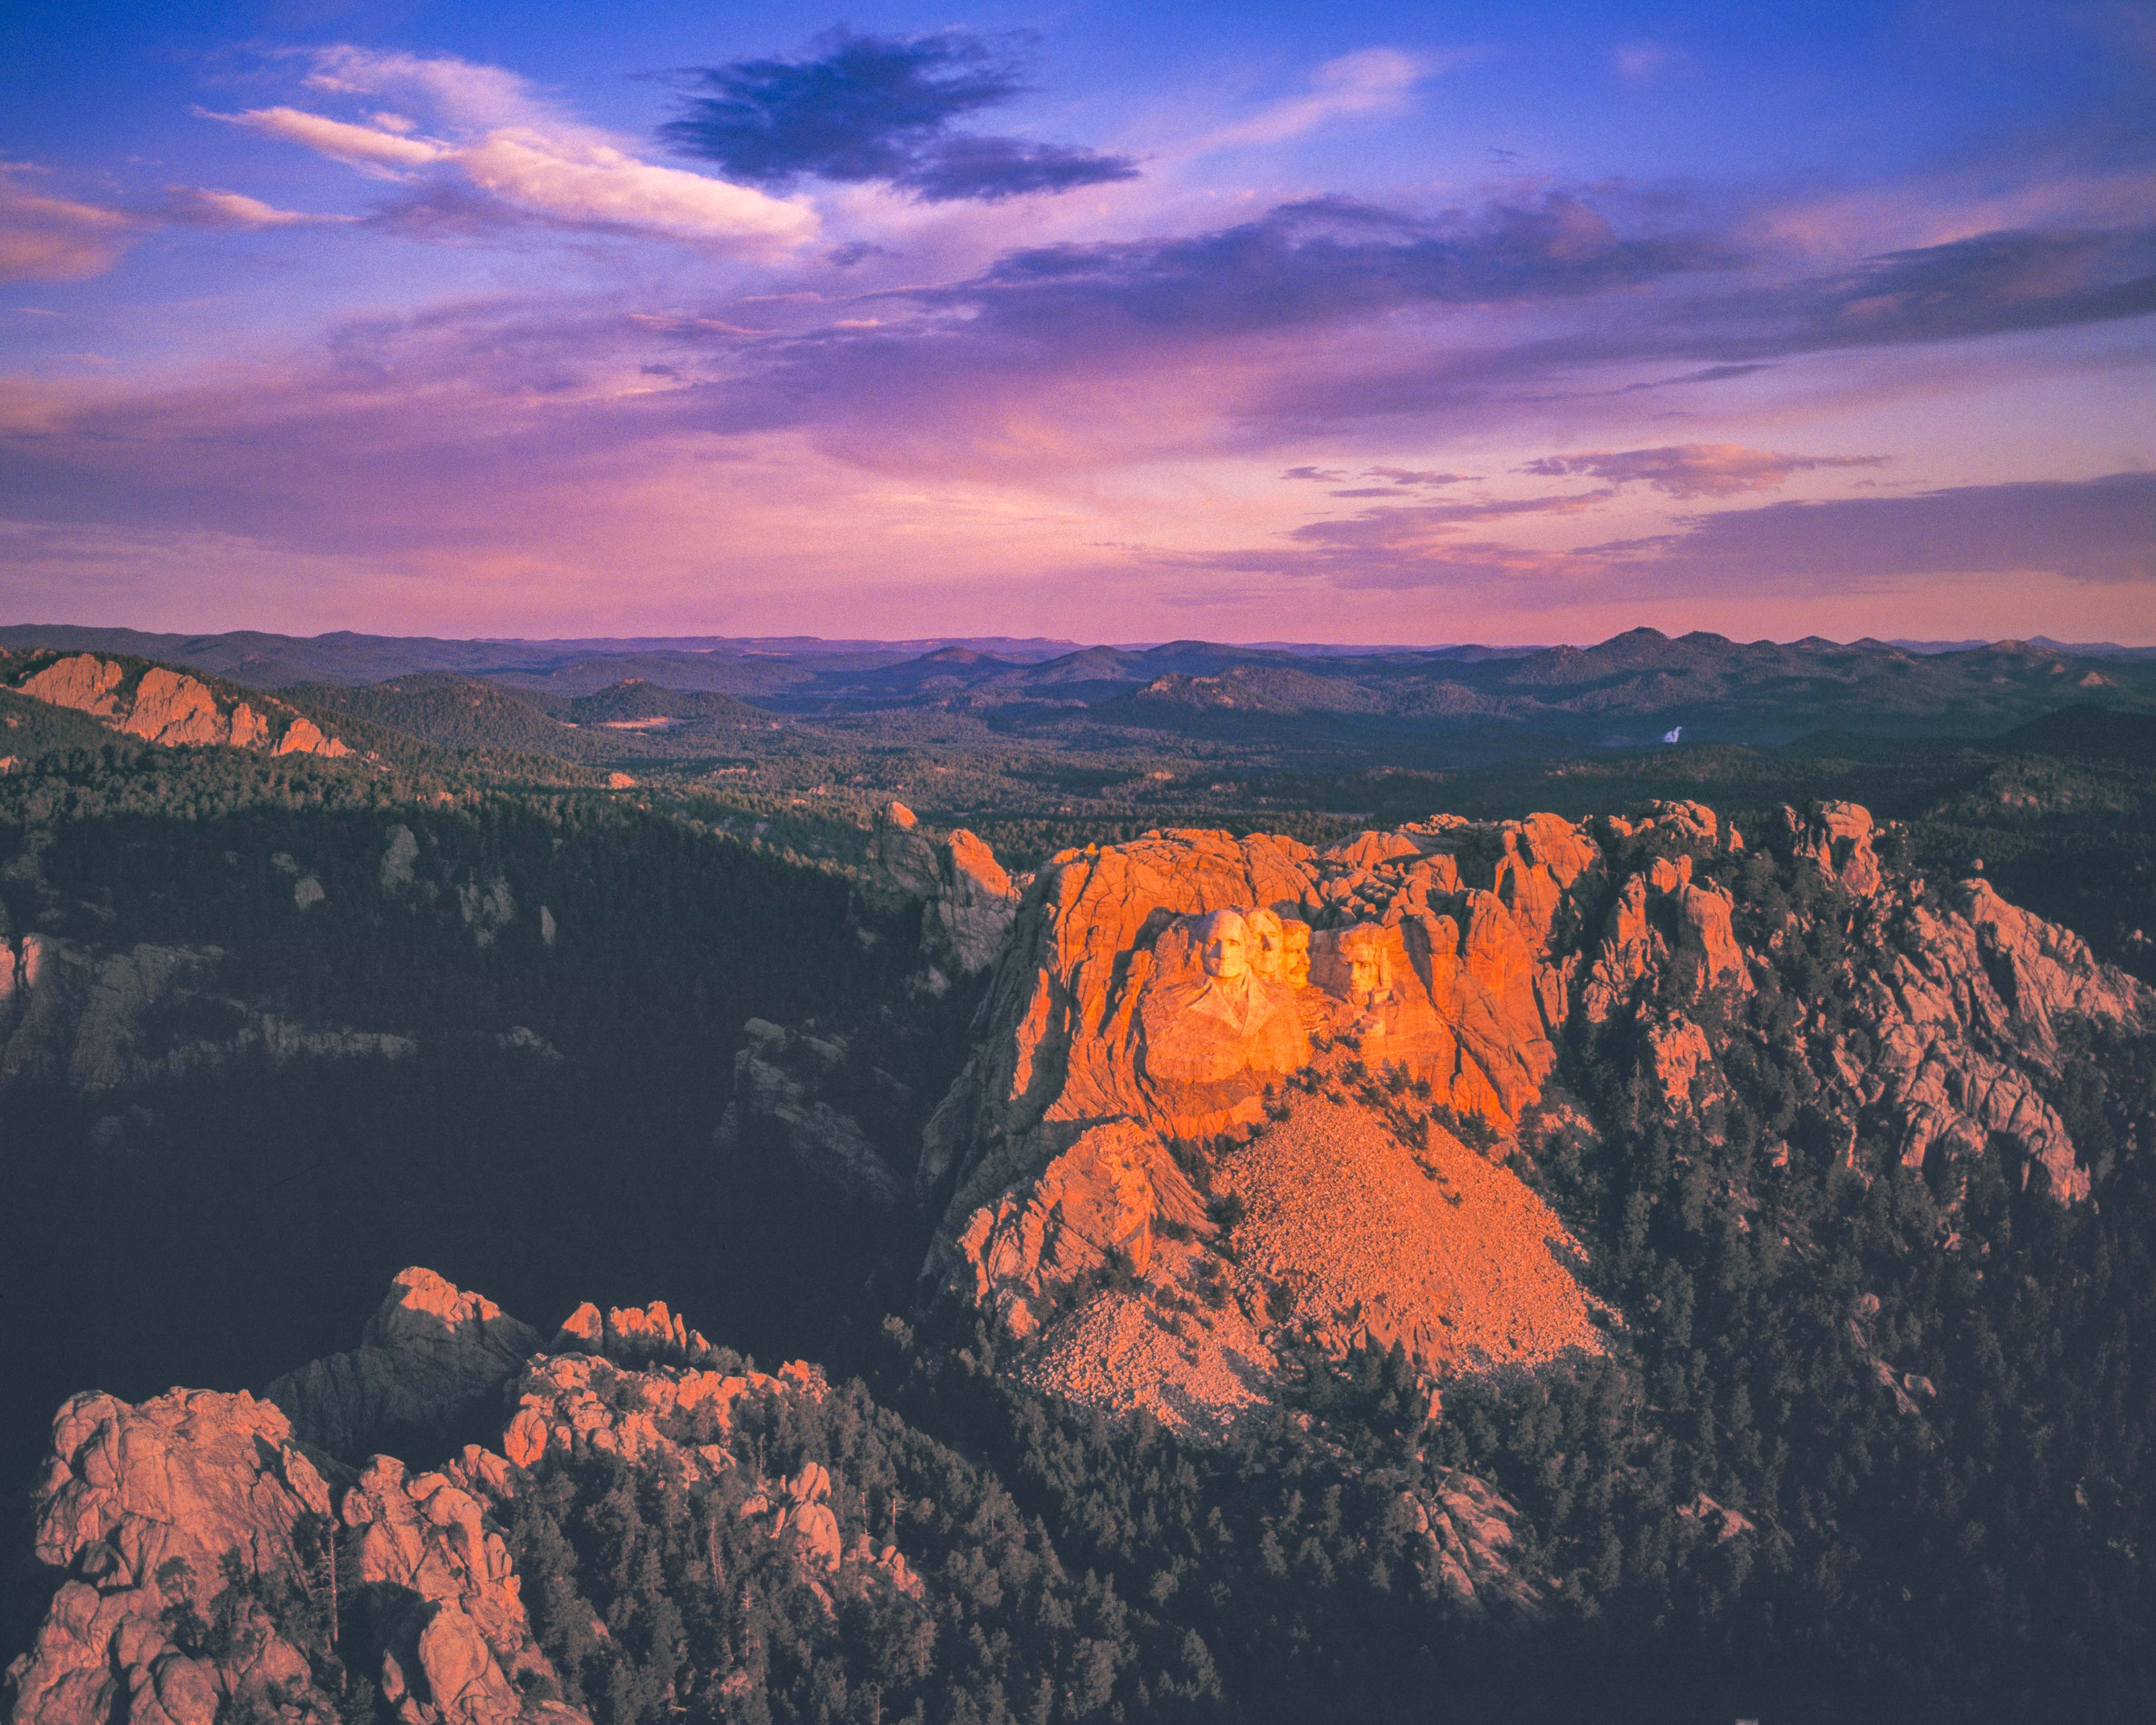 Aerial View of Mount Rushmore at Dawn Photographed by Tom Till